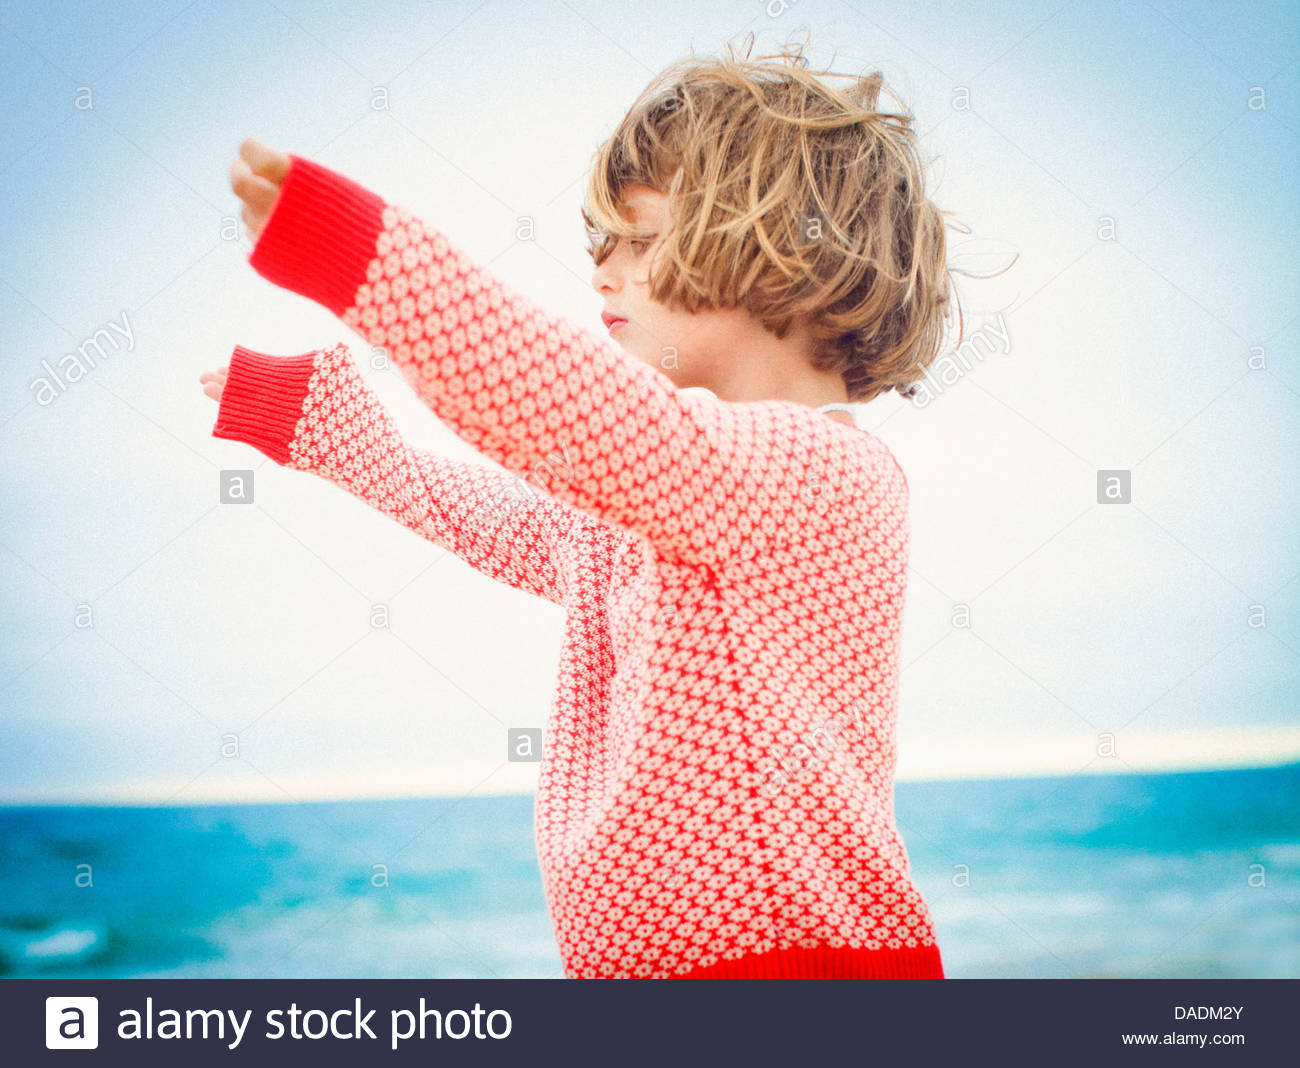 Child girl with outstretched arms enjoying the breeze - Stock Image